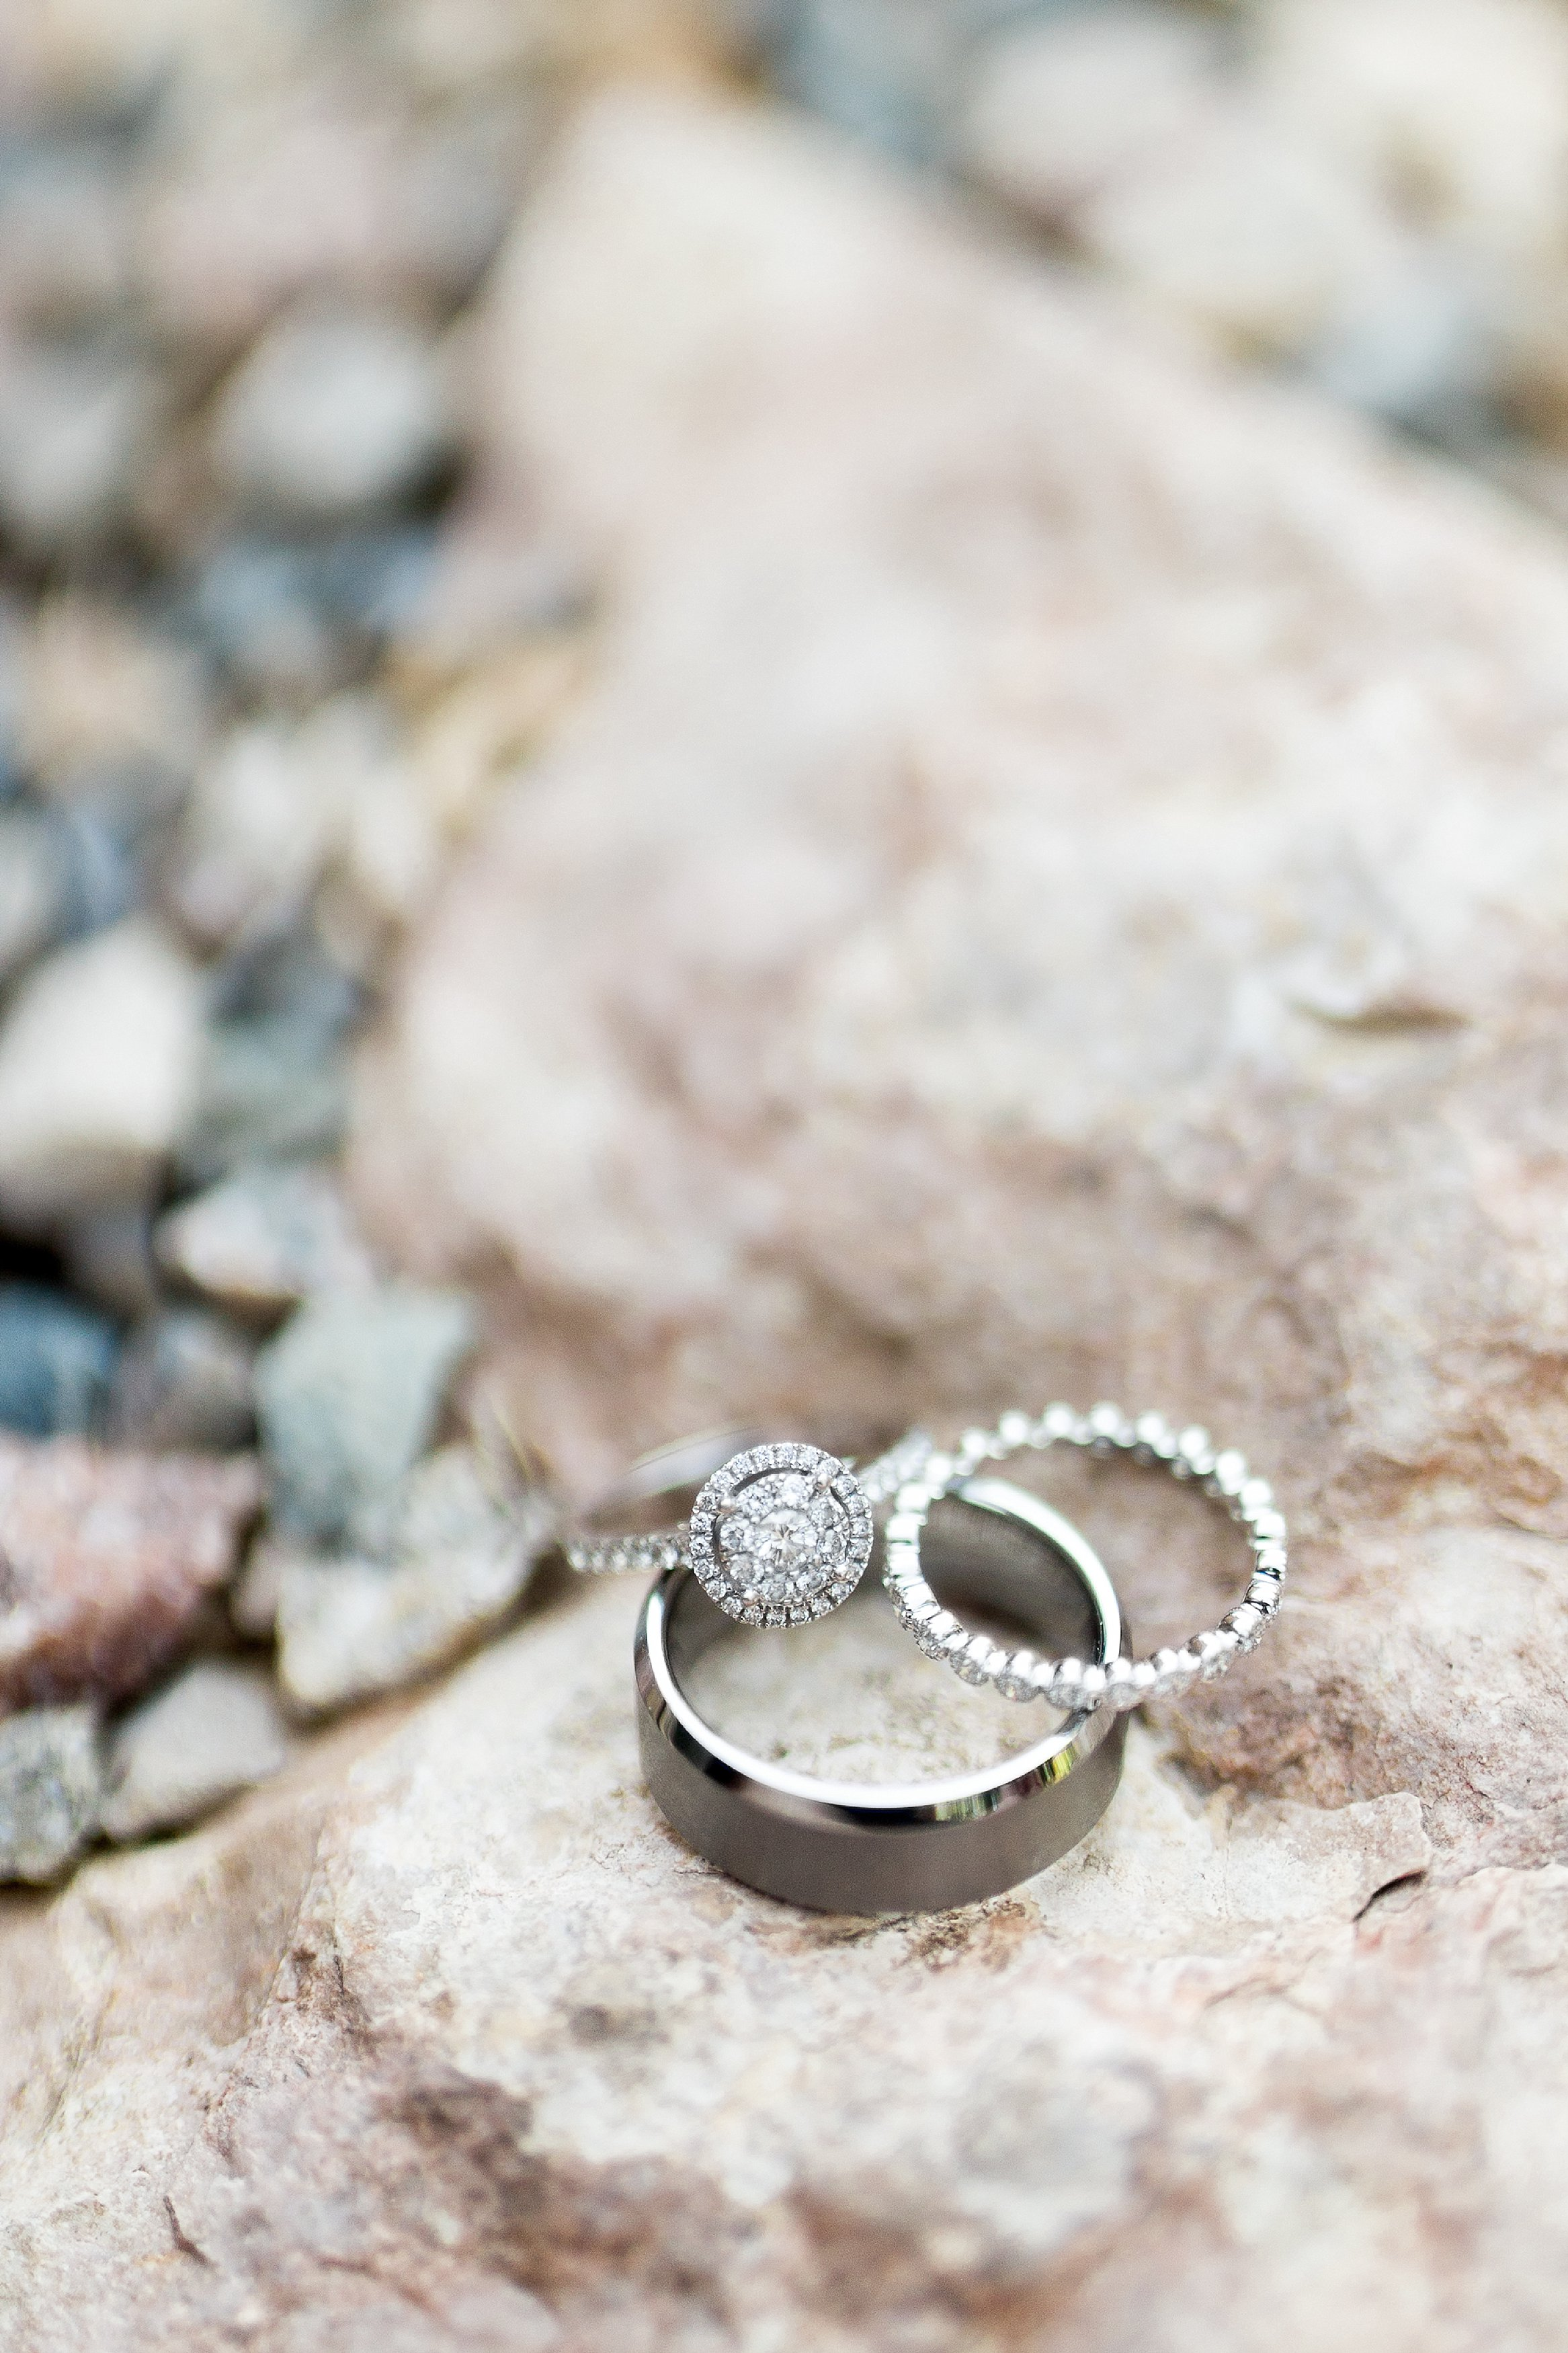 Wedding ring detail photos - Simple Wedding details - Winnipeg Wedding Photographer - Keila Marie Photography